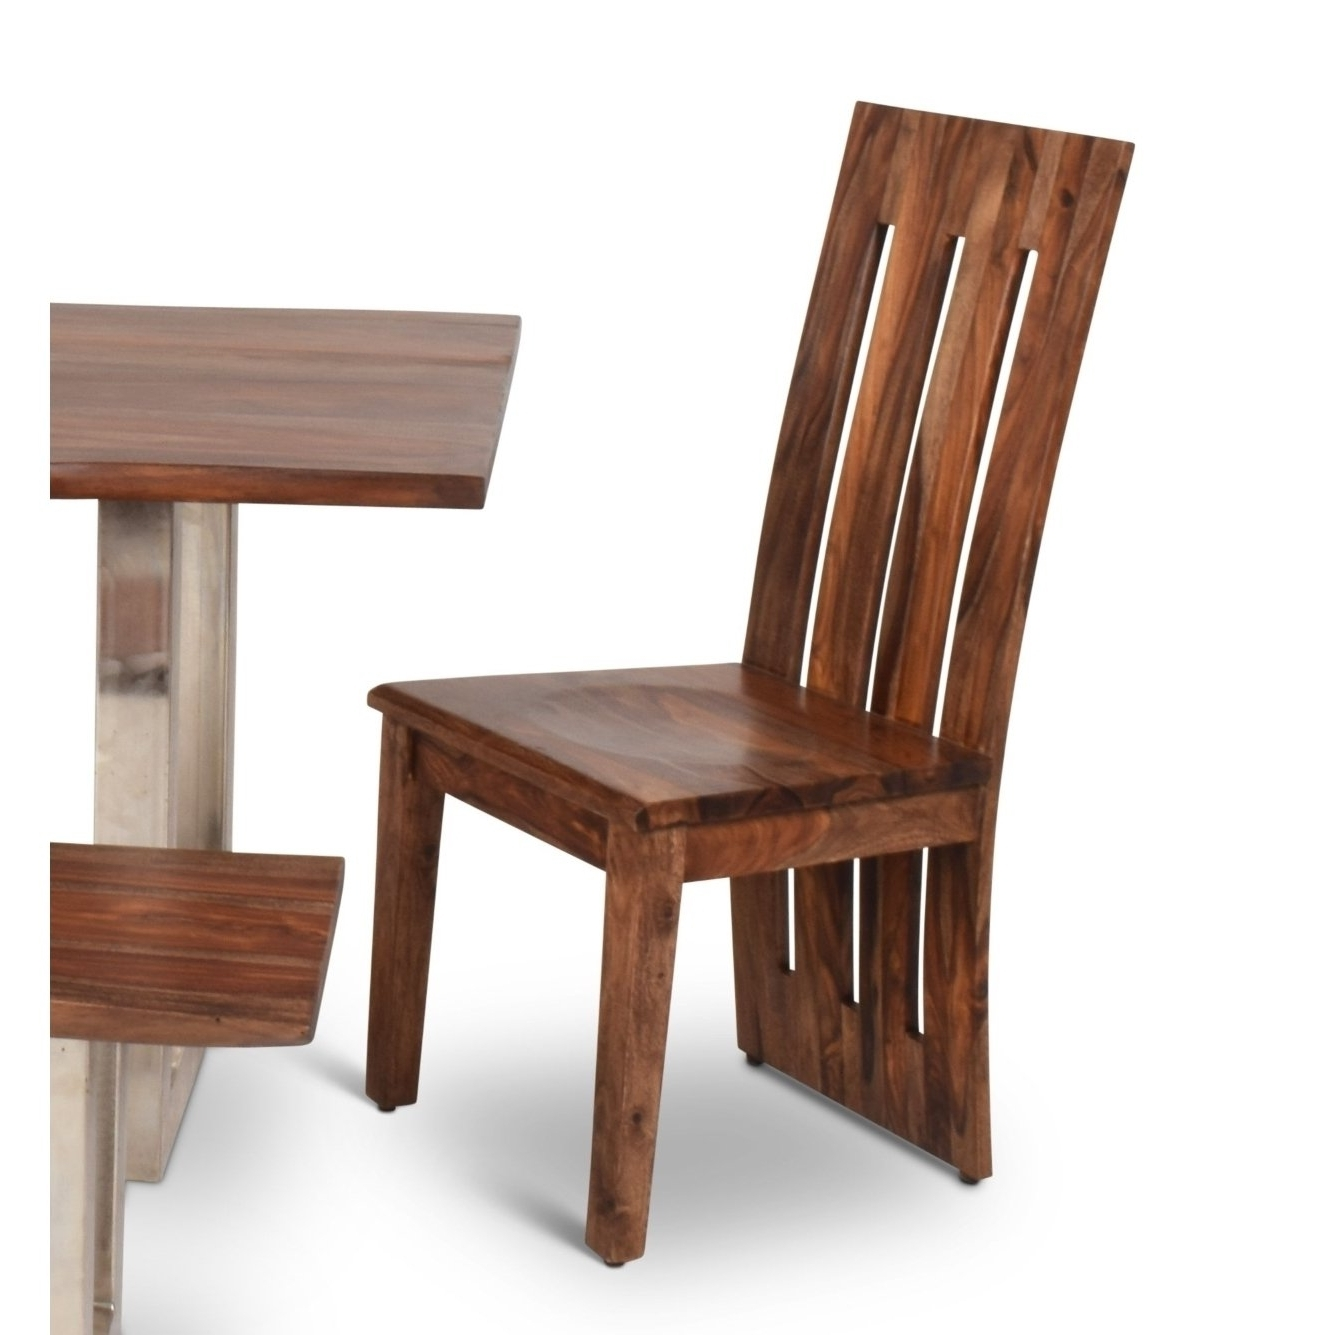 2018 Sheesham Wood Dining Chairs pertaining to Shop Rania Sheesham Wood Dining Chairs (Set Of 2)Greyson Living